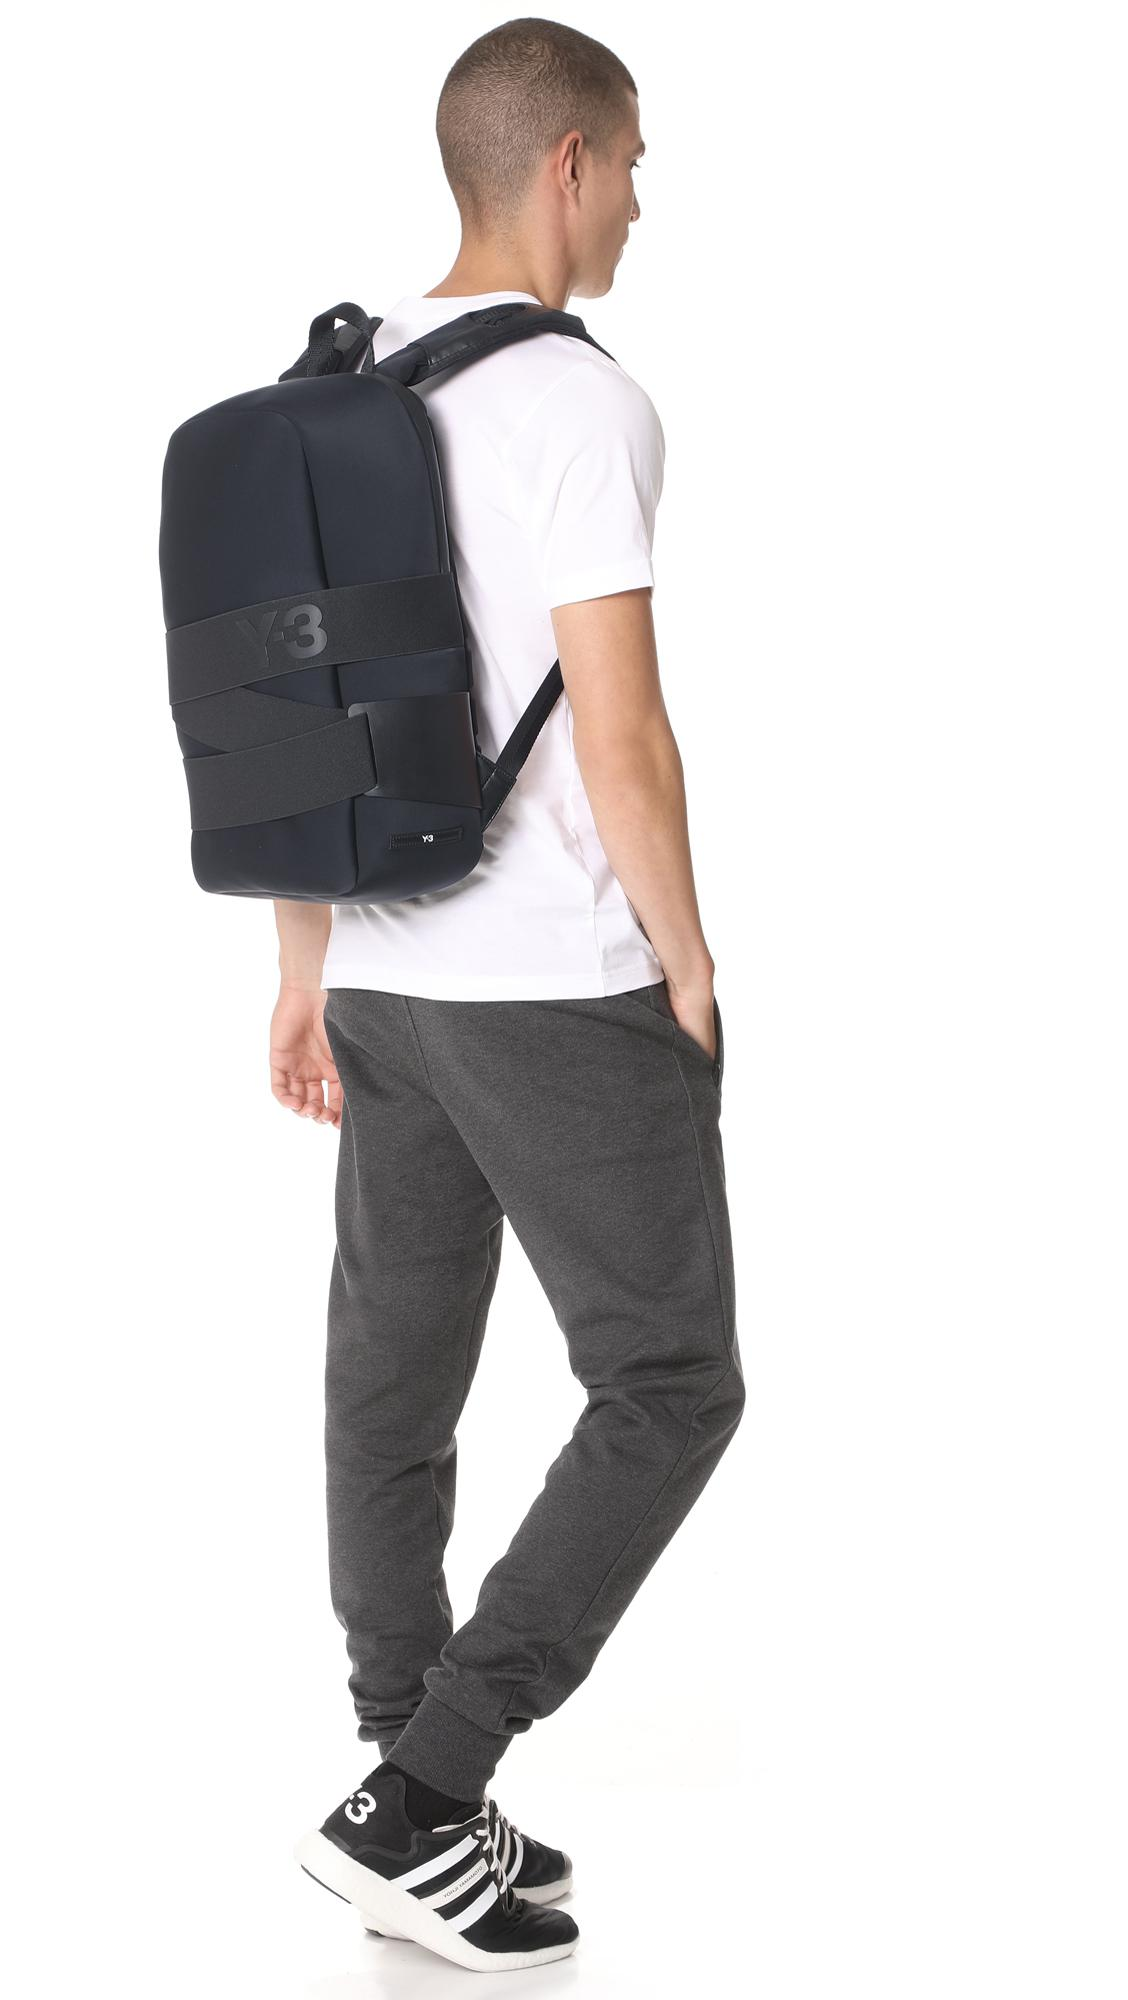 e78223f830 Lyst - Y-3 Qrush Backpack in Black for Men